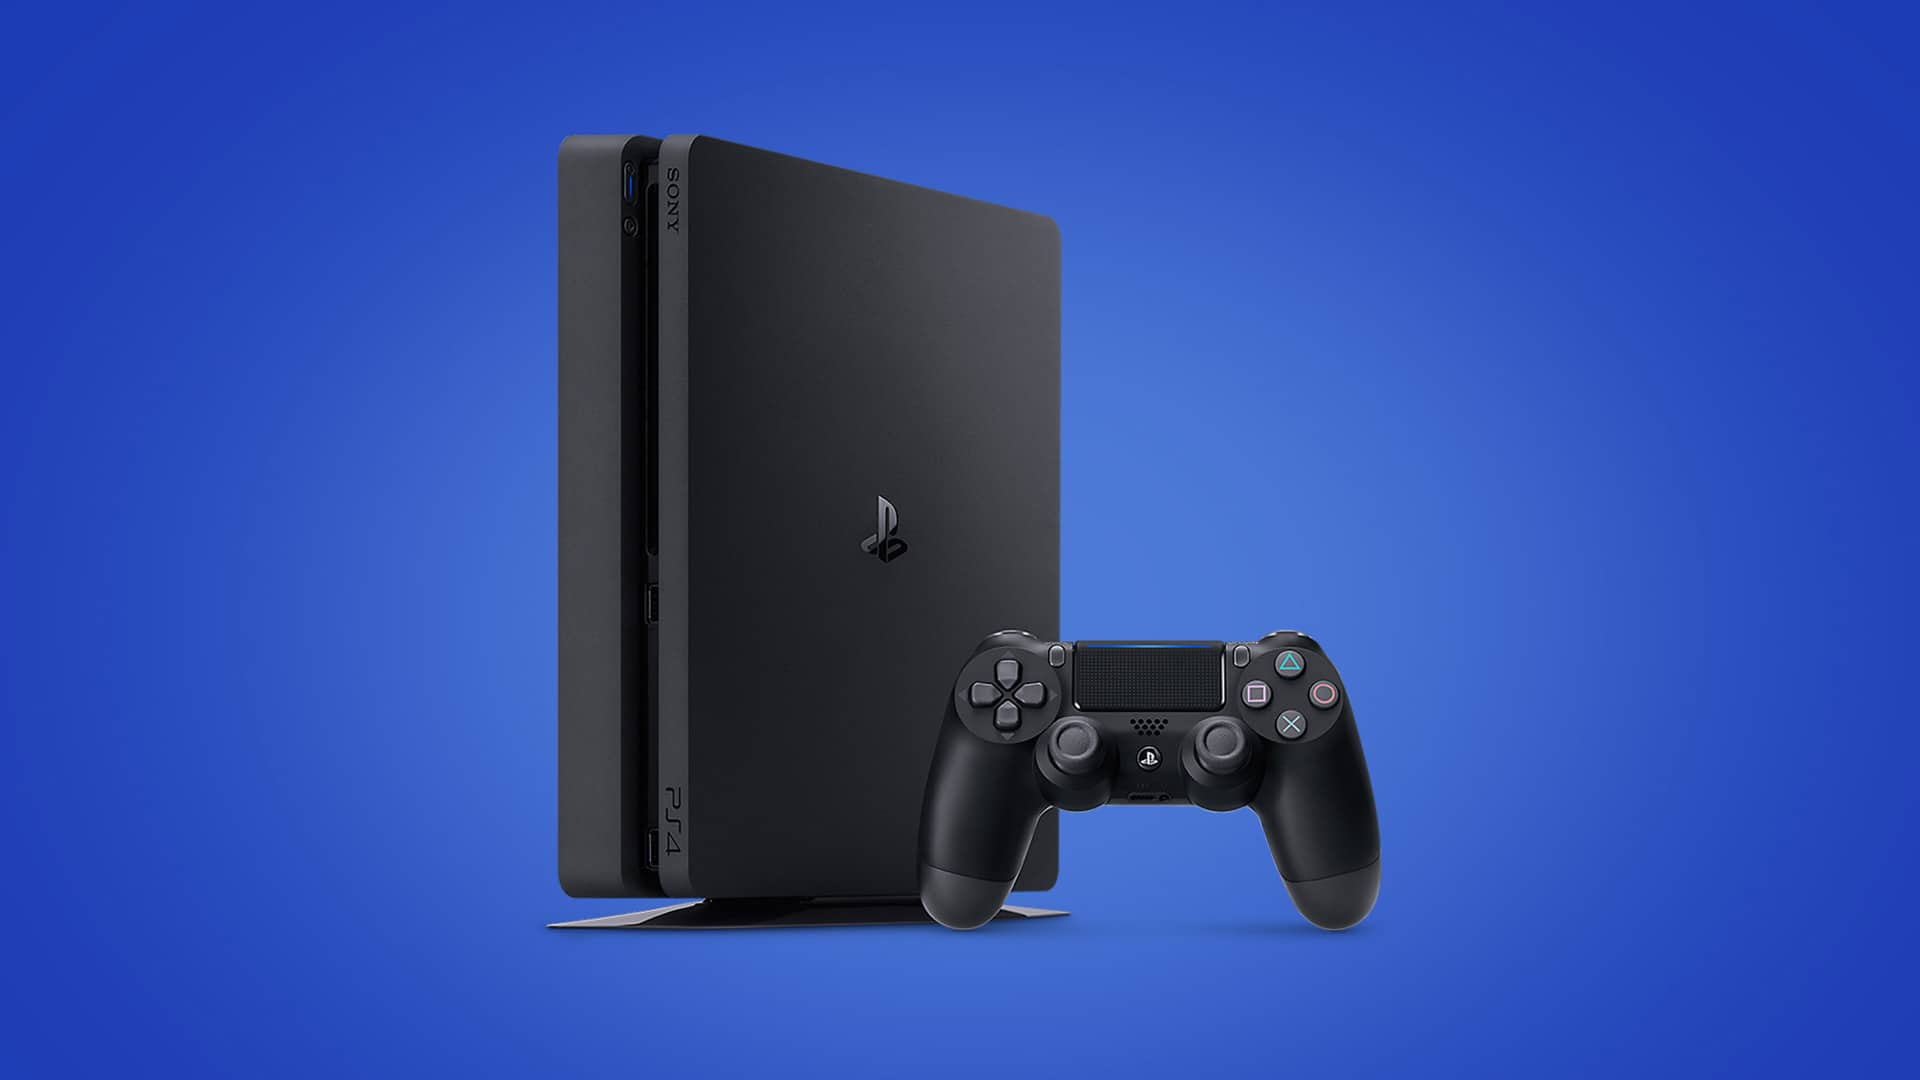 Movistar en PS4: cómo ver y configurar tu PlayStation